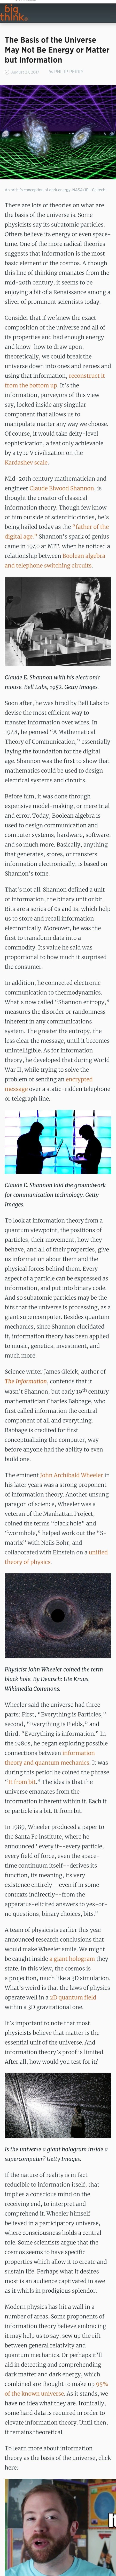 The Basis of the Universe May Not Be Energy or Matter but Information